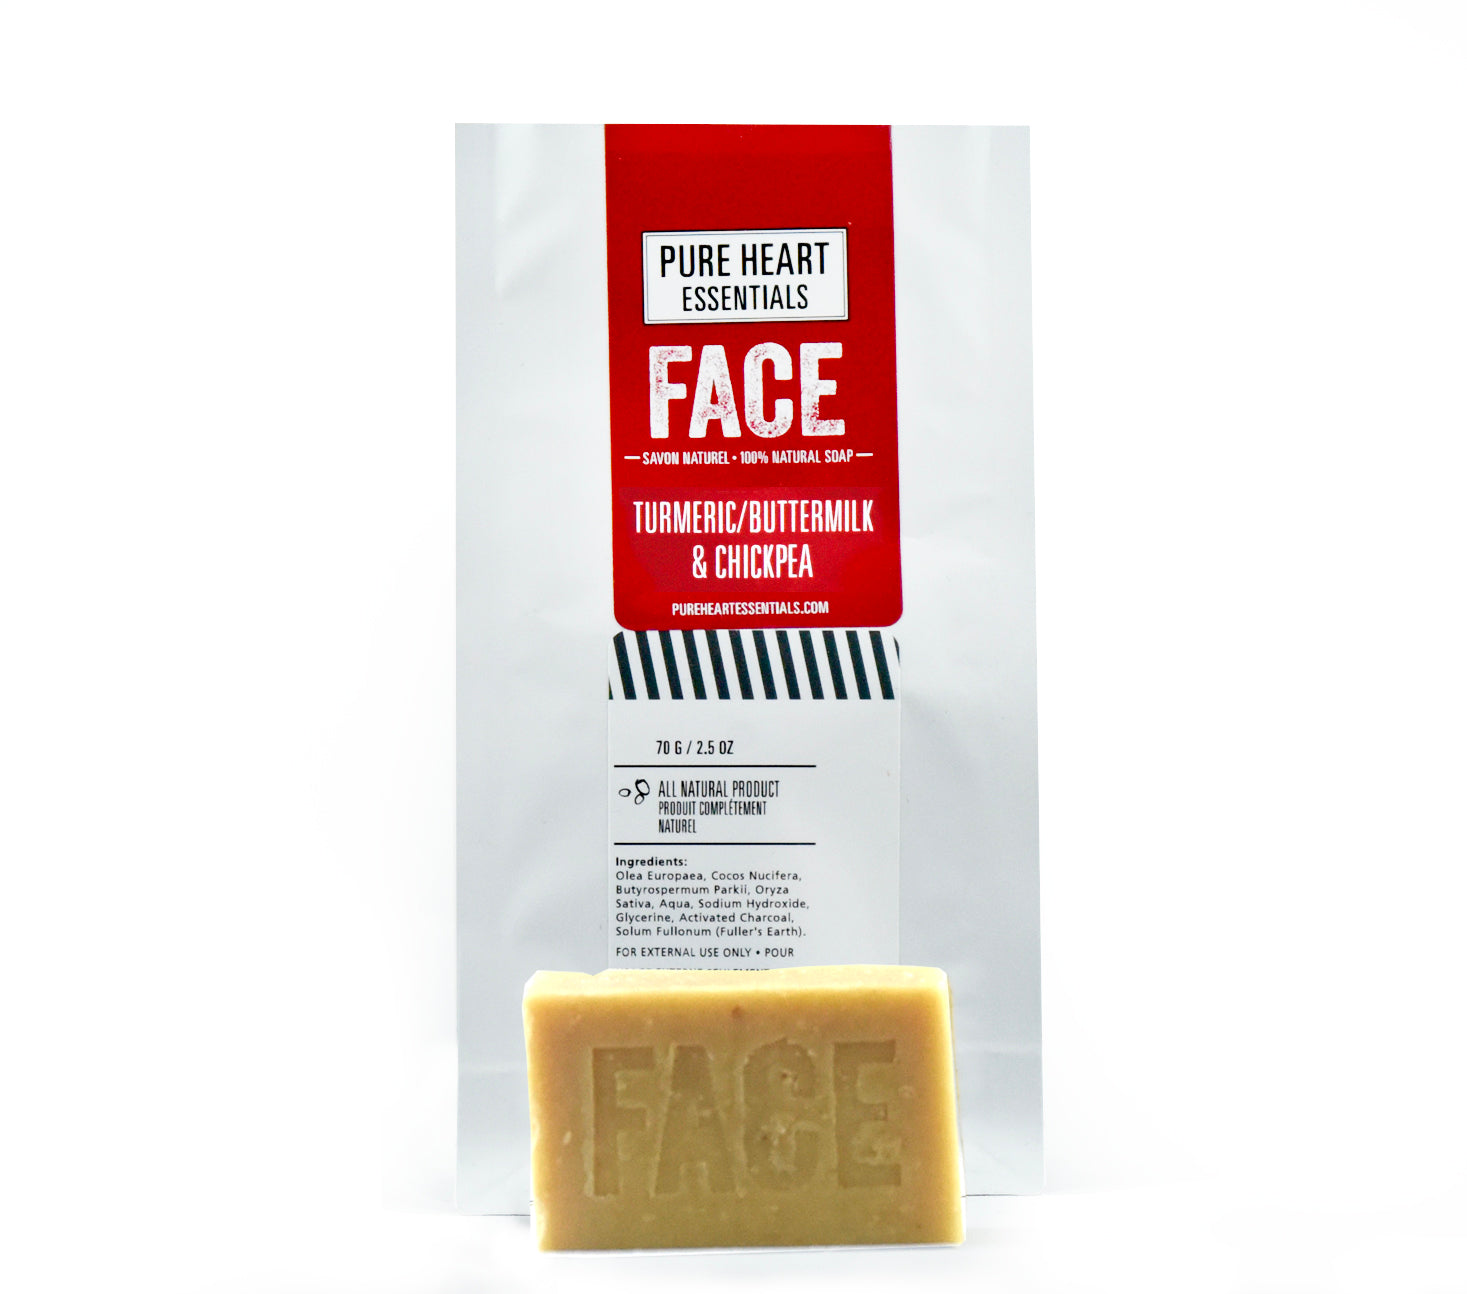 FACE – TURMERIC/BUTTERMILK/CHICKPEA FLOUR, AYURVEDIC FACIAL CARE